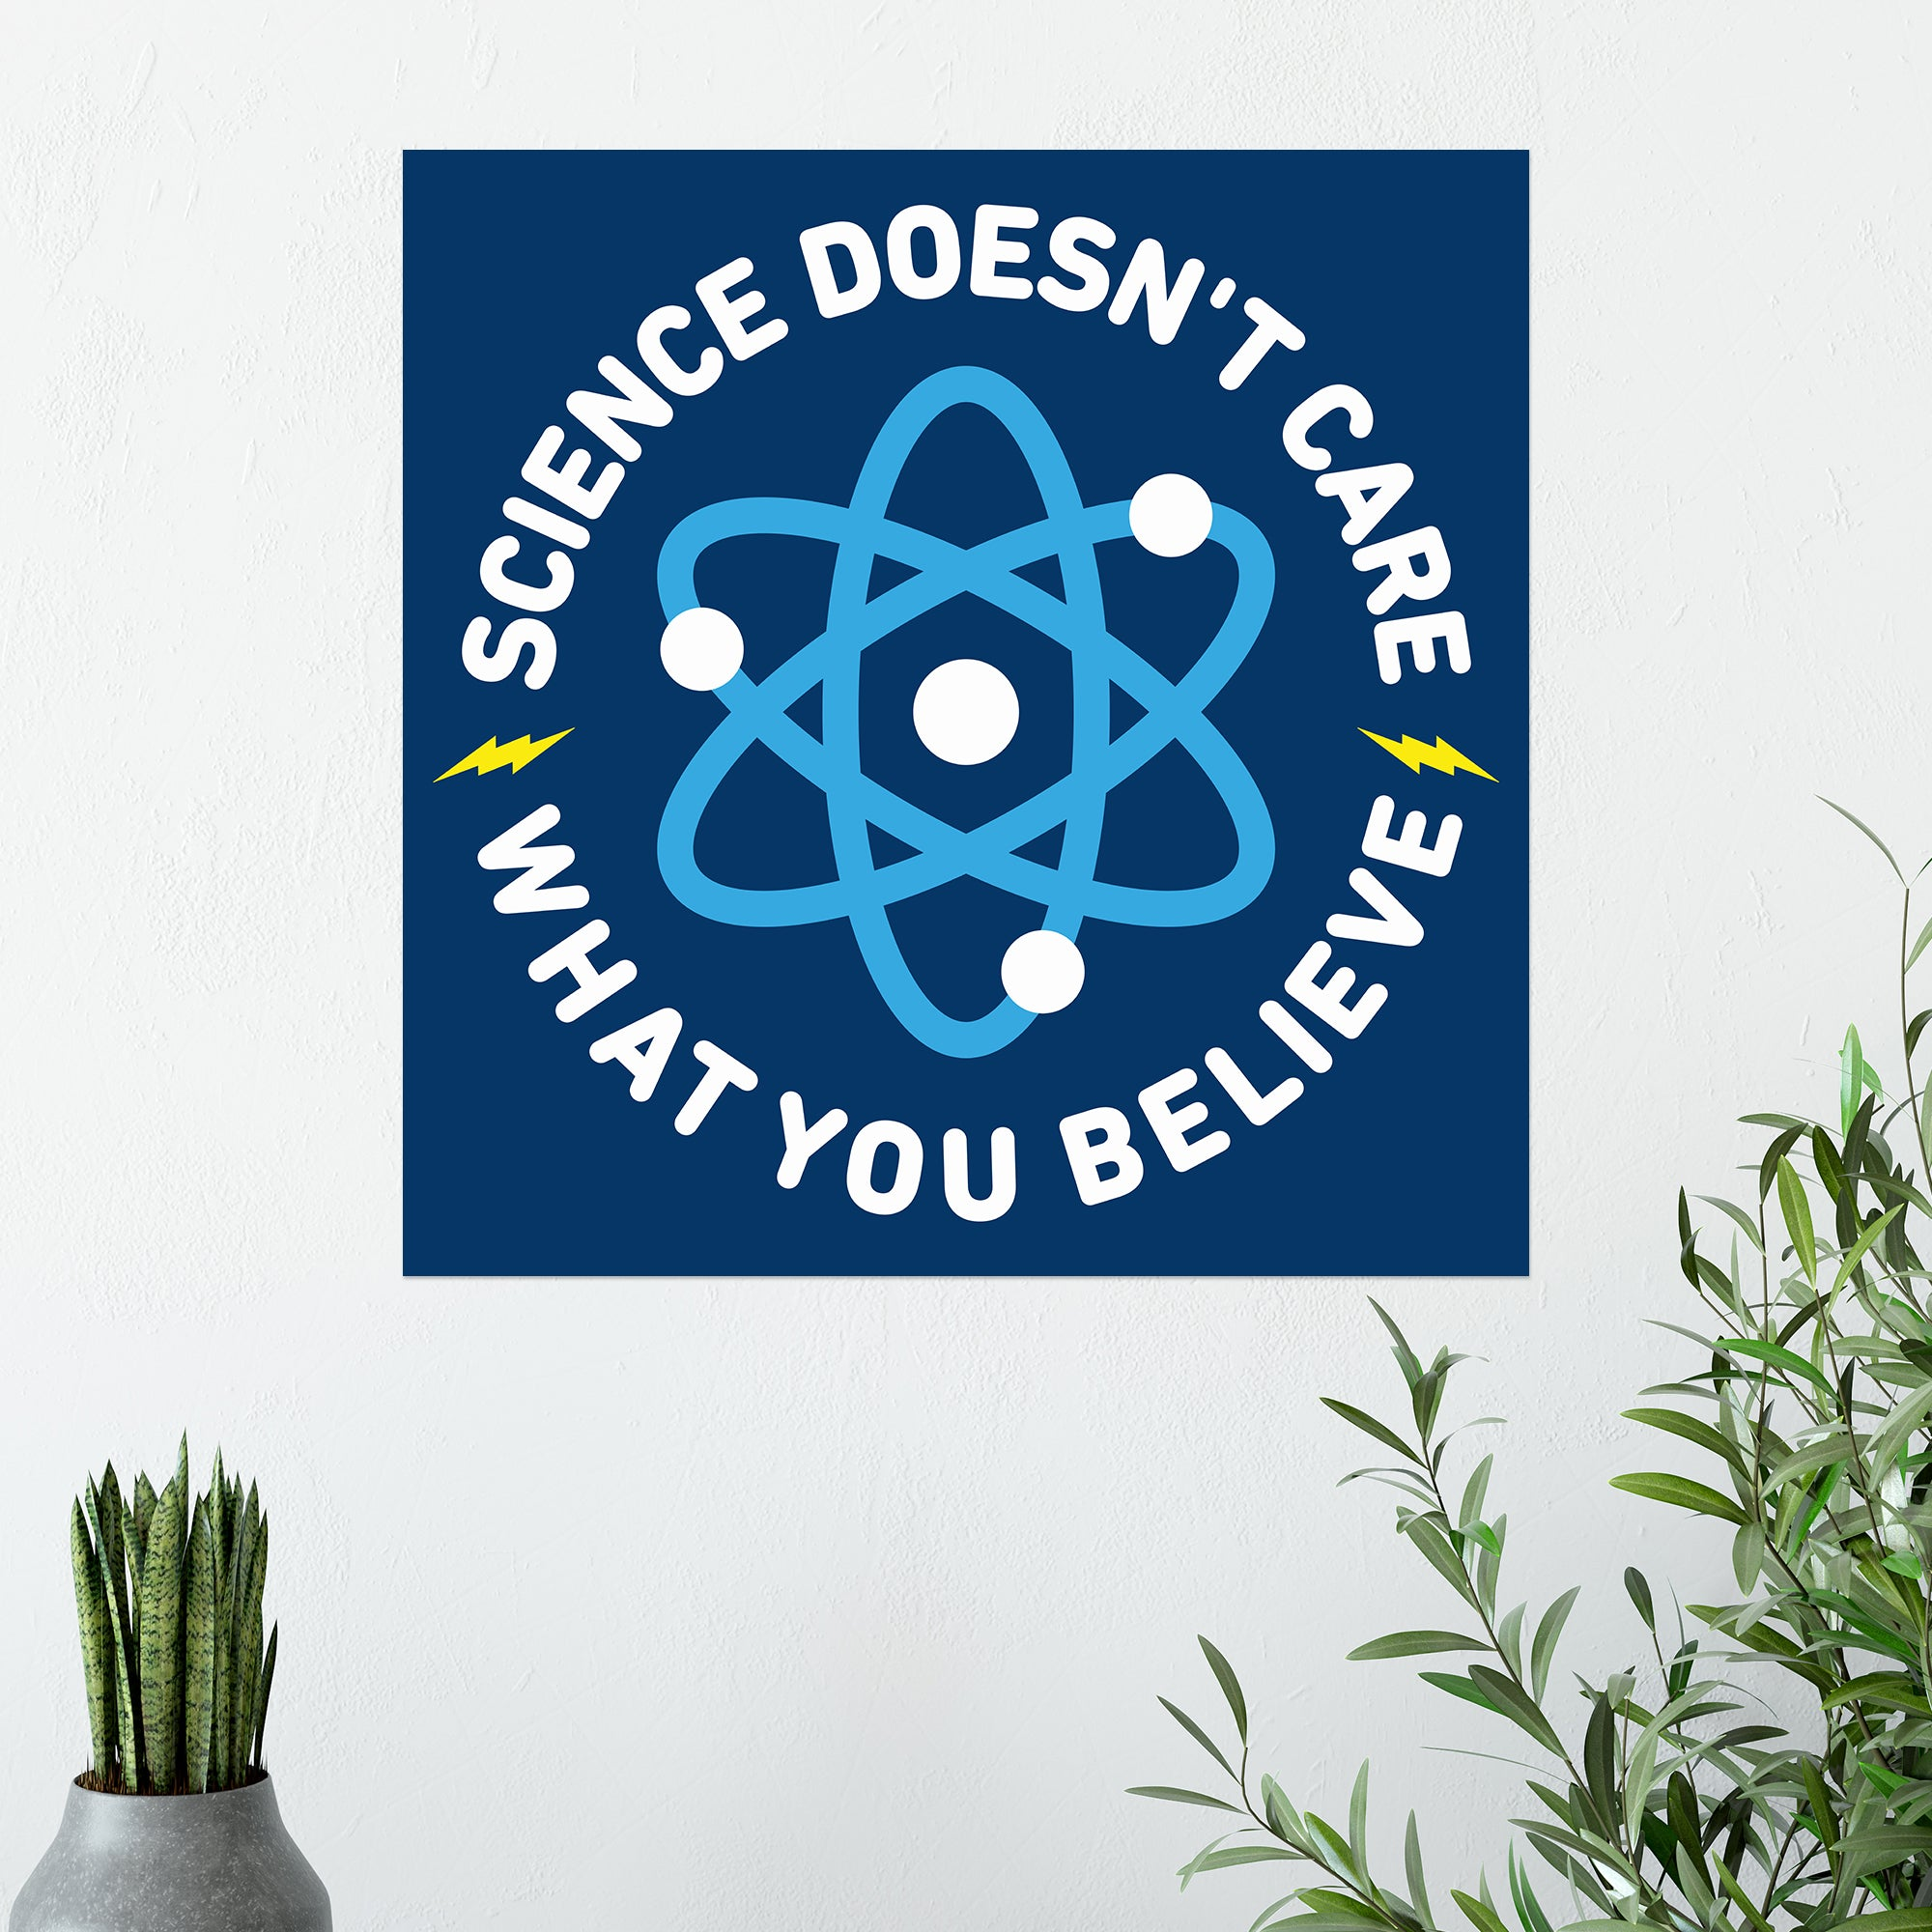 CHEAP Science Doesn't Care Poster 25050042239 – Clothing Accessories